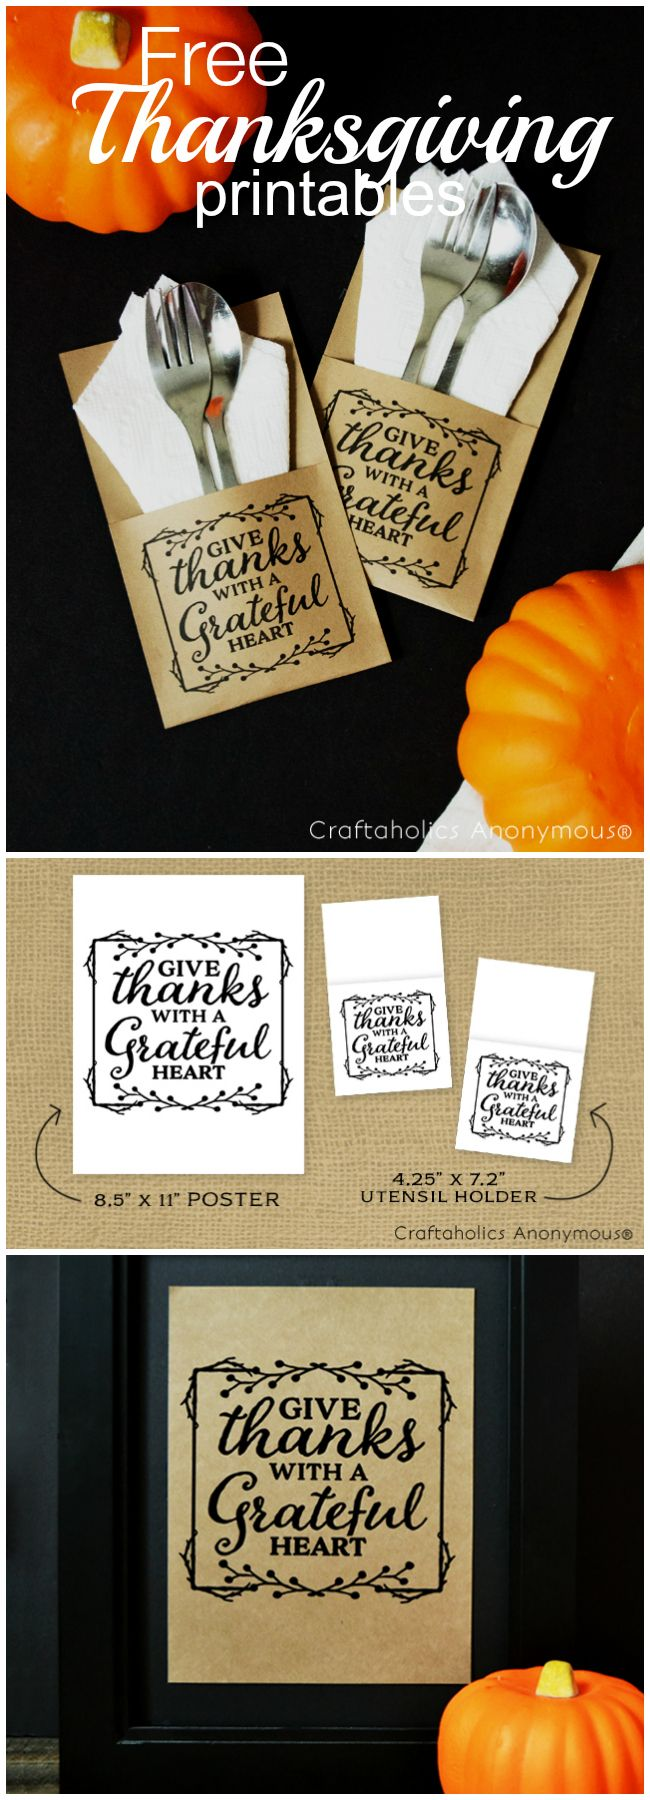 Free Thanksgiving Printables utensil holders. Print on kraft paper for a rustic look. Love this idea!